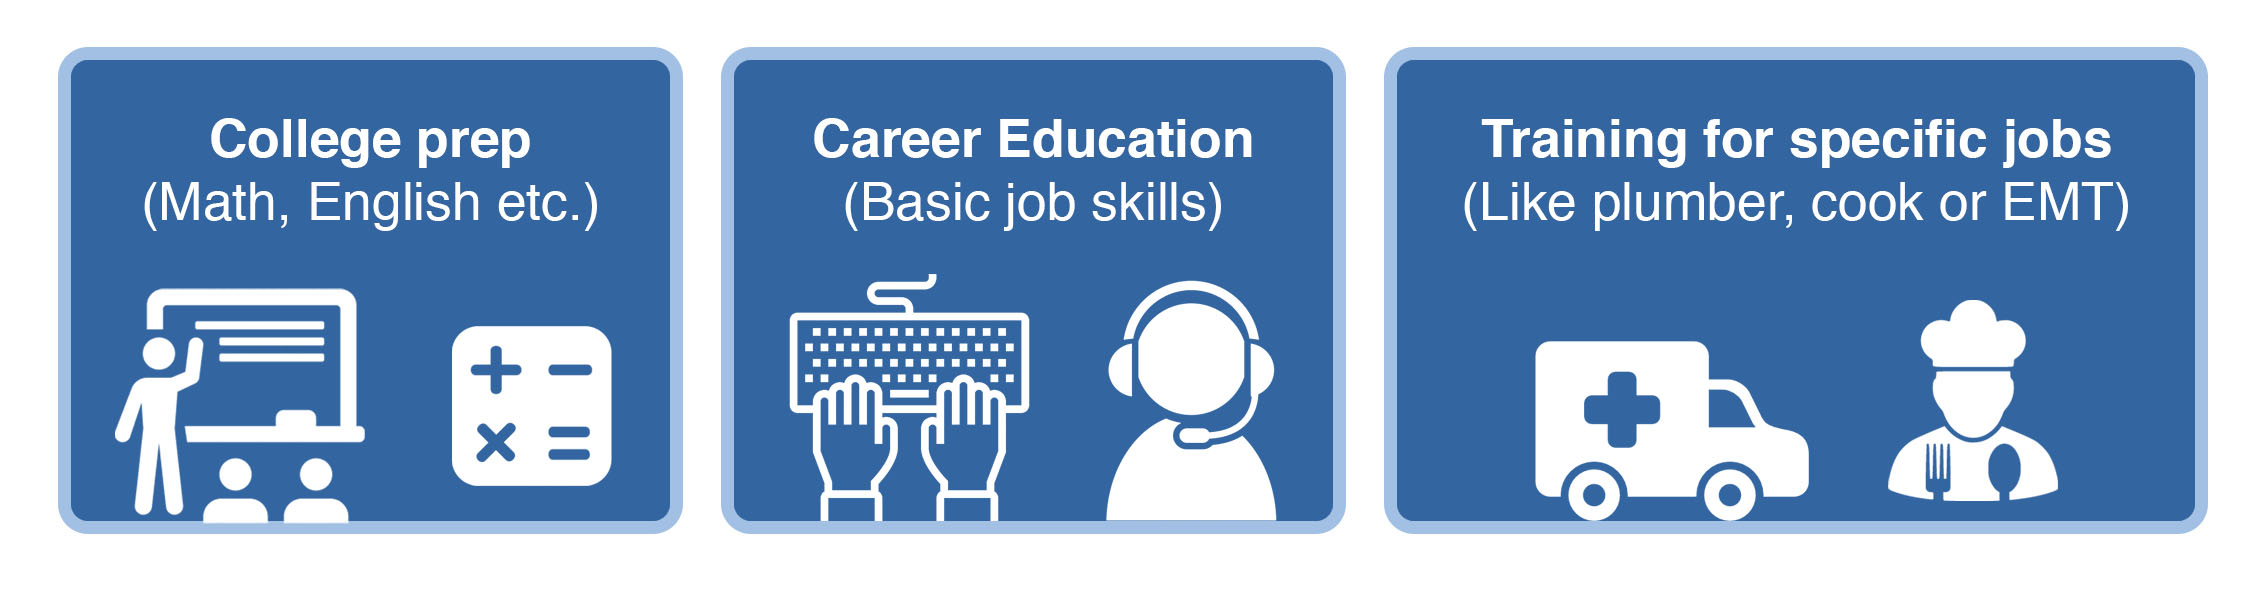 Image of three rounded rectangles. In the first rectangle is the text 'College Prep (Math, English, etc.)' above icons of a teacher at a blackboard and mathematical symbols. In the second rectangle is the text 'Career Education (Basic job skills)' above icons of a person typing on a keyboard and a person wearing a phone headset. In the third rectangle is the text 'Training for Specific Jobs (Like plumber, cook or EMT)' above icons of an ambulance and a cook.